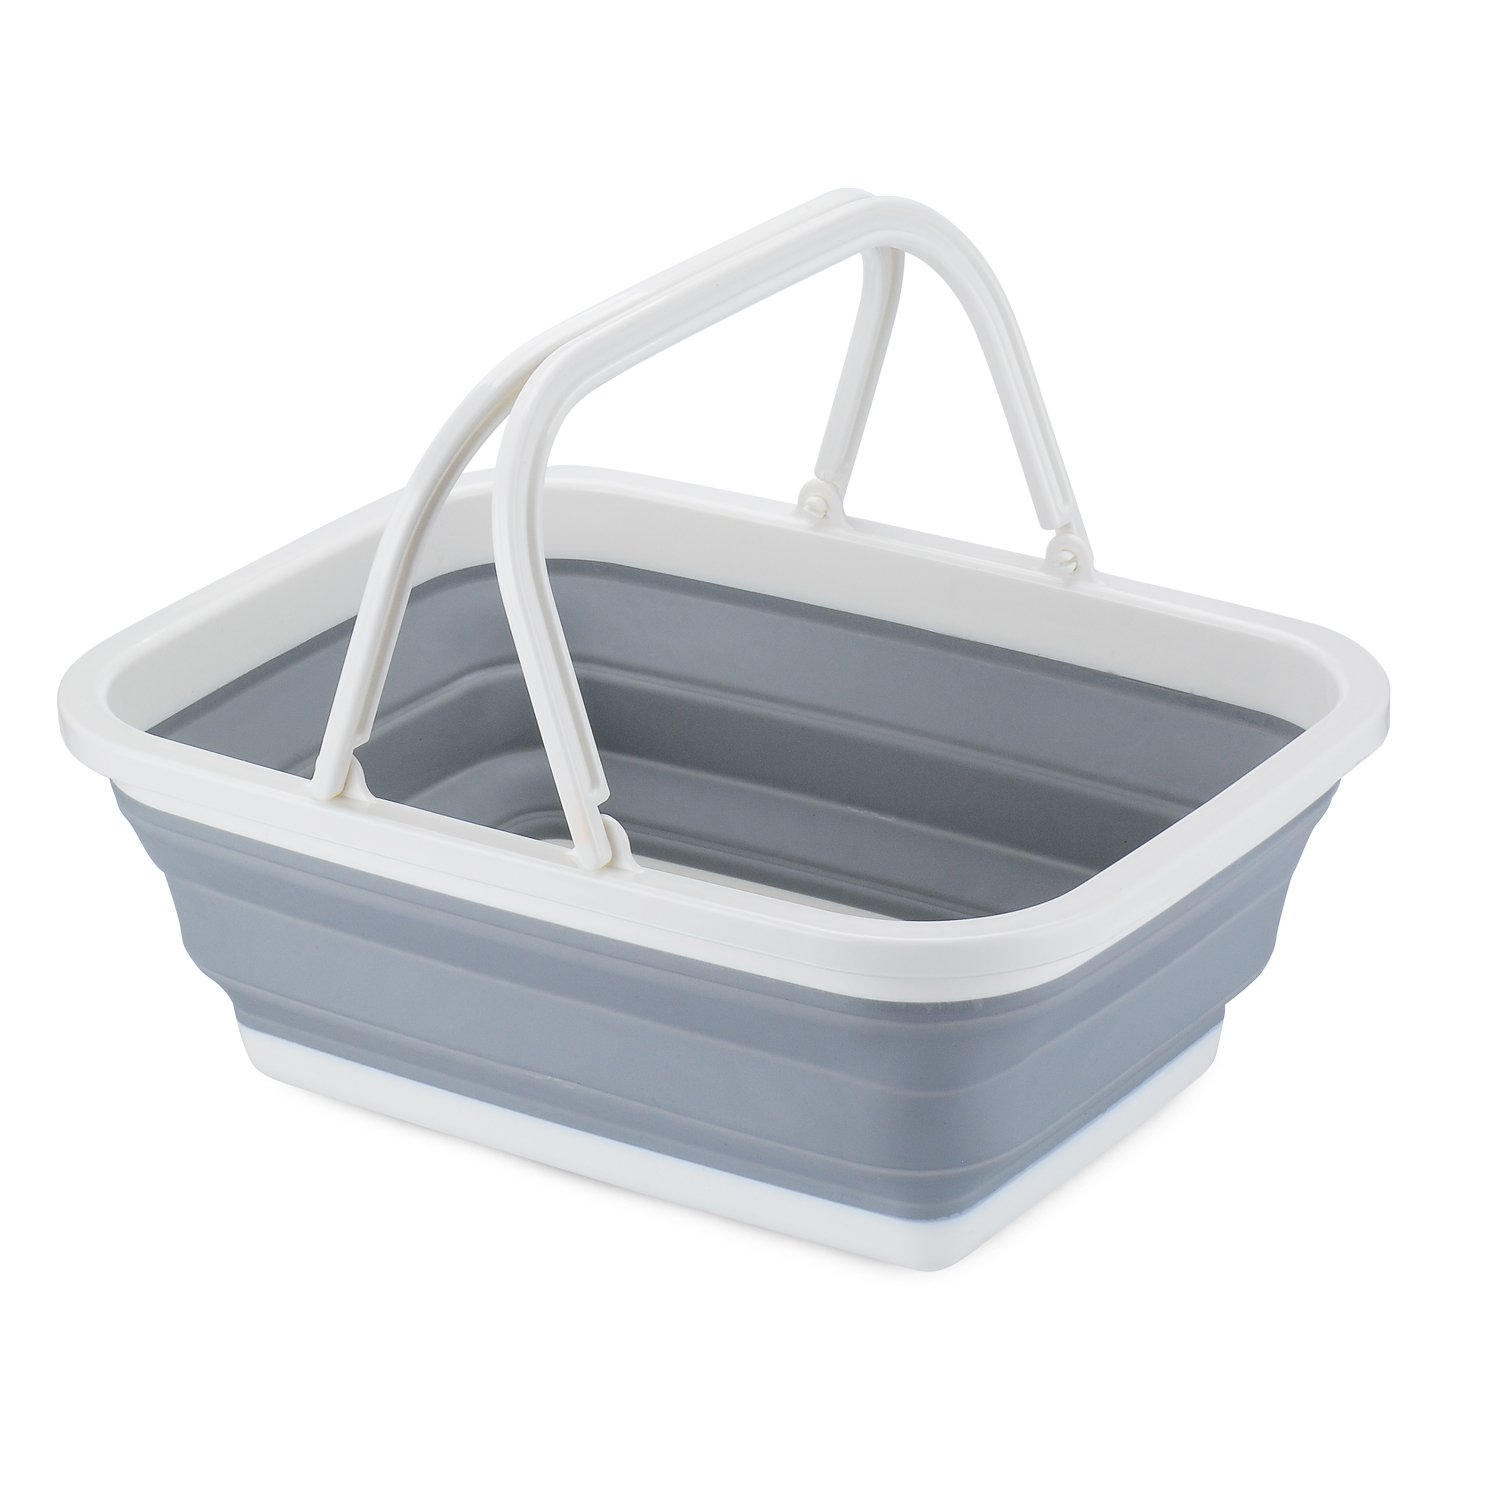 PerHomeAid Portable Collapsible Sink Storage Basket Wash Fruits And Vegetables,Kitchen Organizer Accessories Supplies Gear Items Stuff, Easy Storage with Double Handles